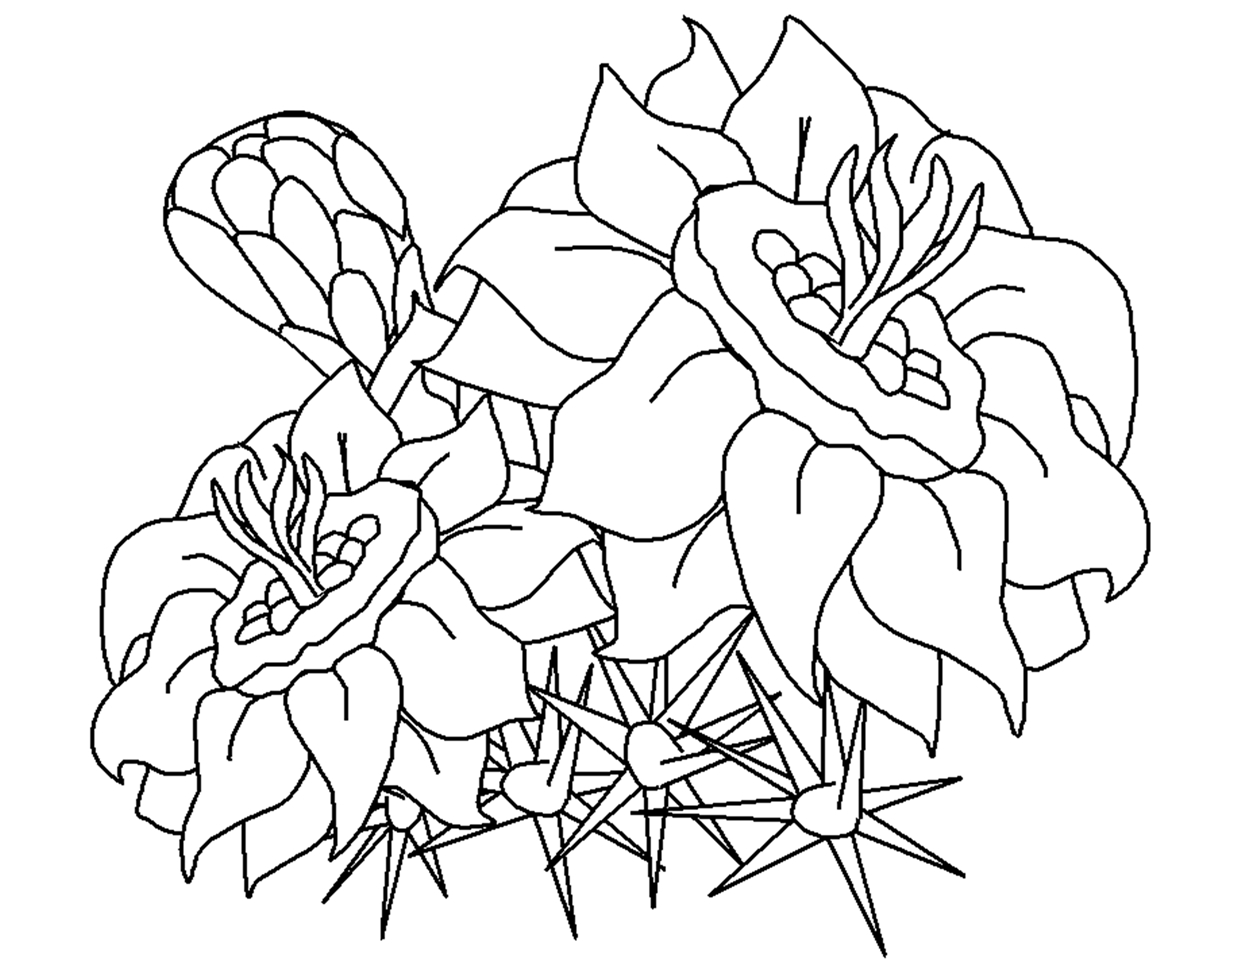 flowers coloring pages printable free printable flower coloring pages for kids best printable flowers pages coloring